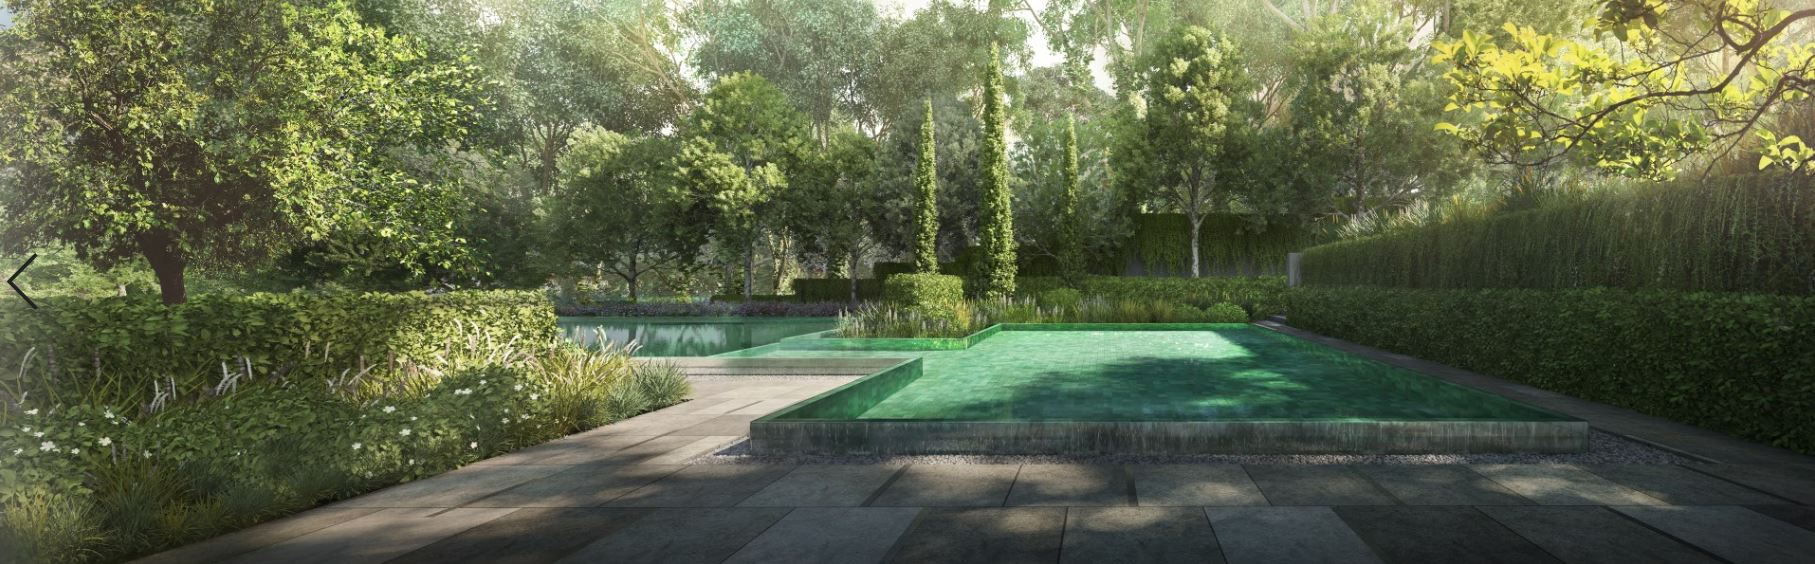 Artist's Impression . Extensive Gardens Inspired by the English Countryside